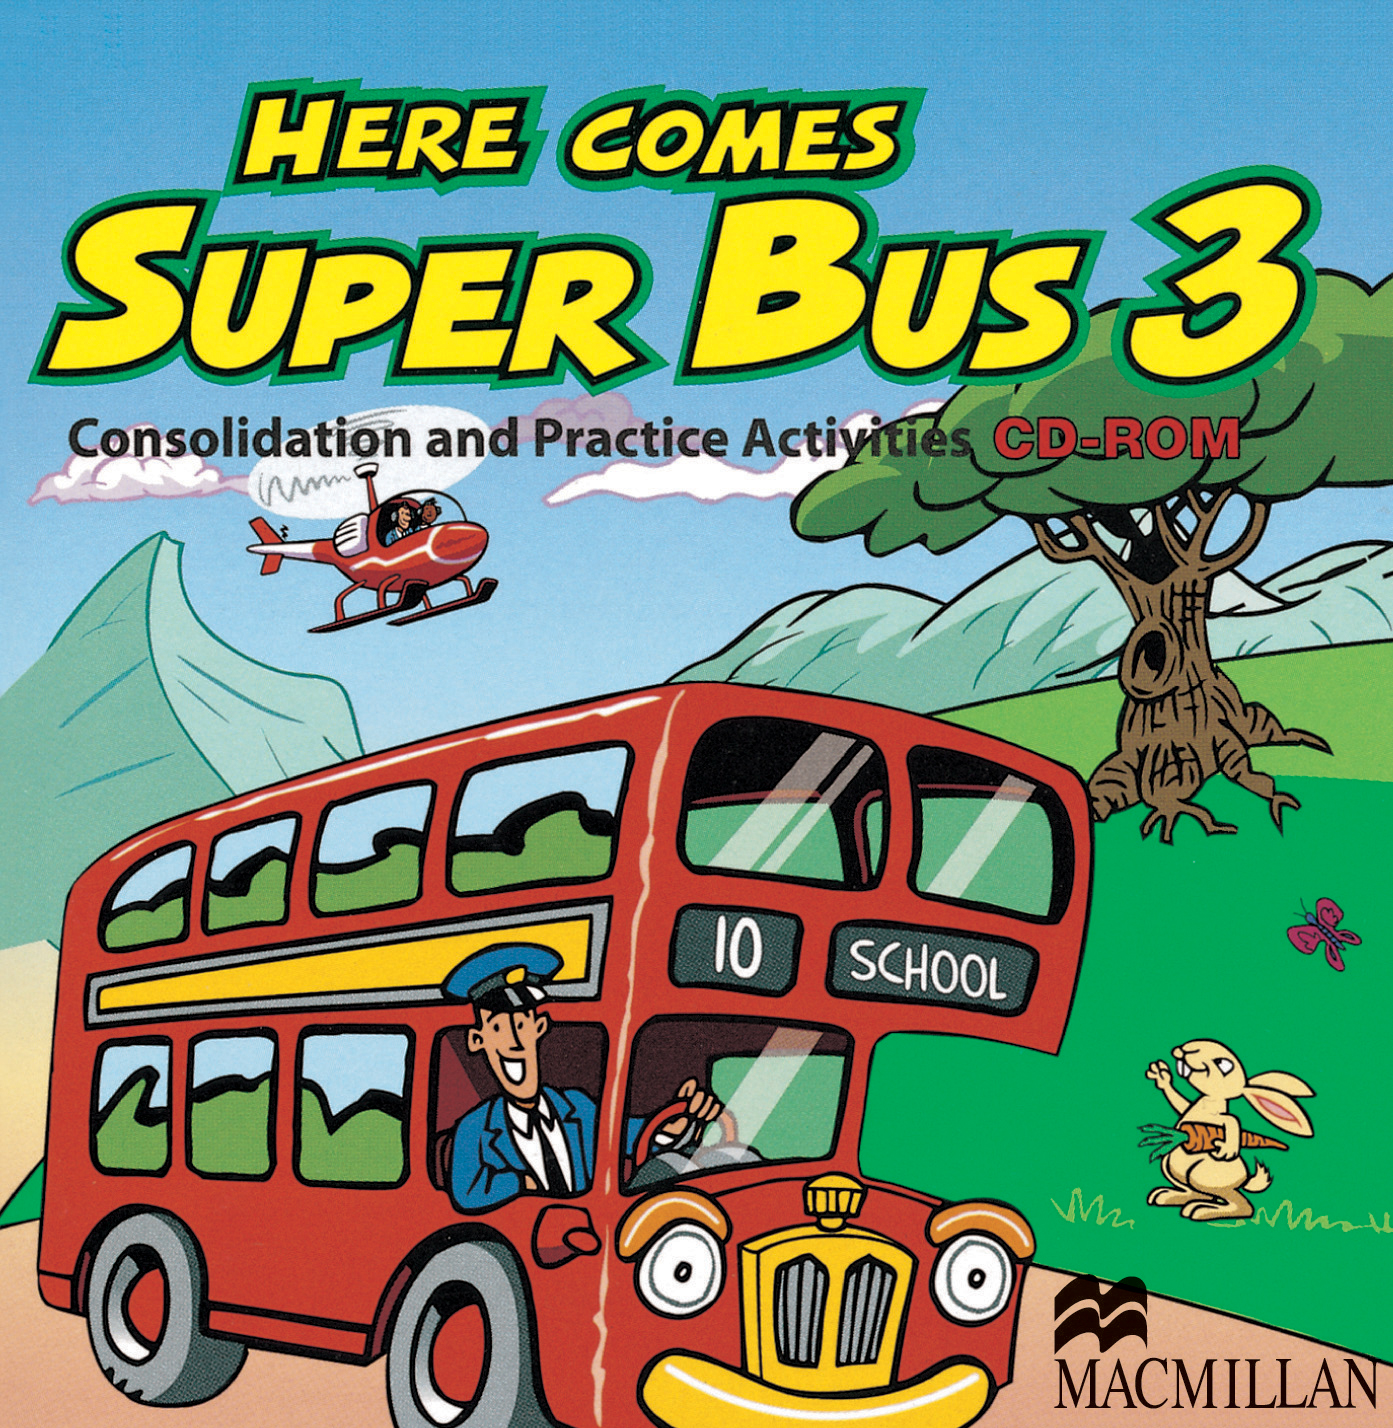 Here Comes Super Bus 3 Consolidation and Practice Activities CD-ROM